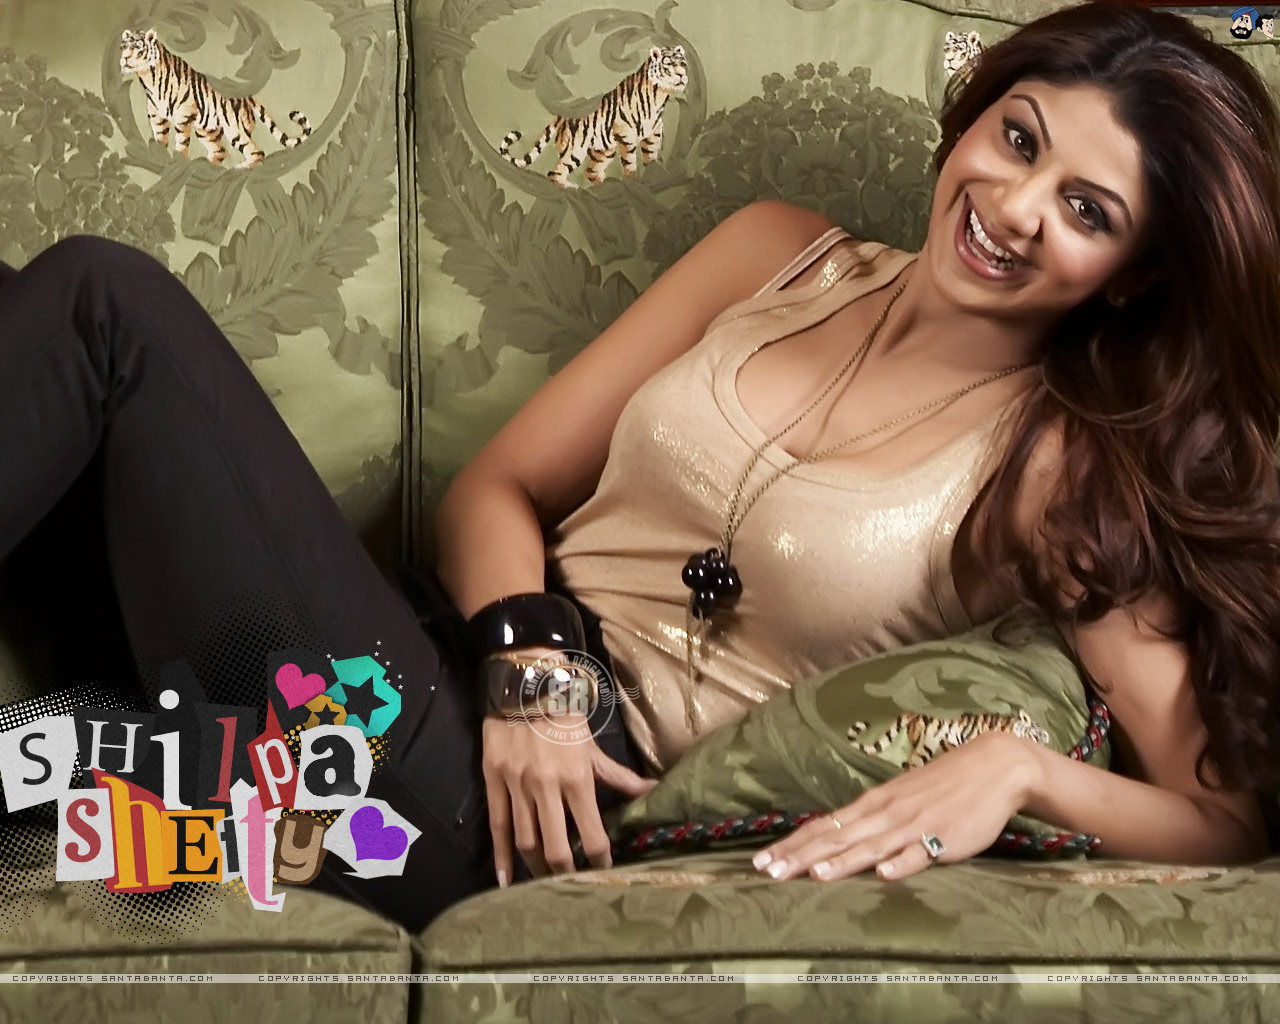 Shilpa Shetty | wallpapers Galaxi